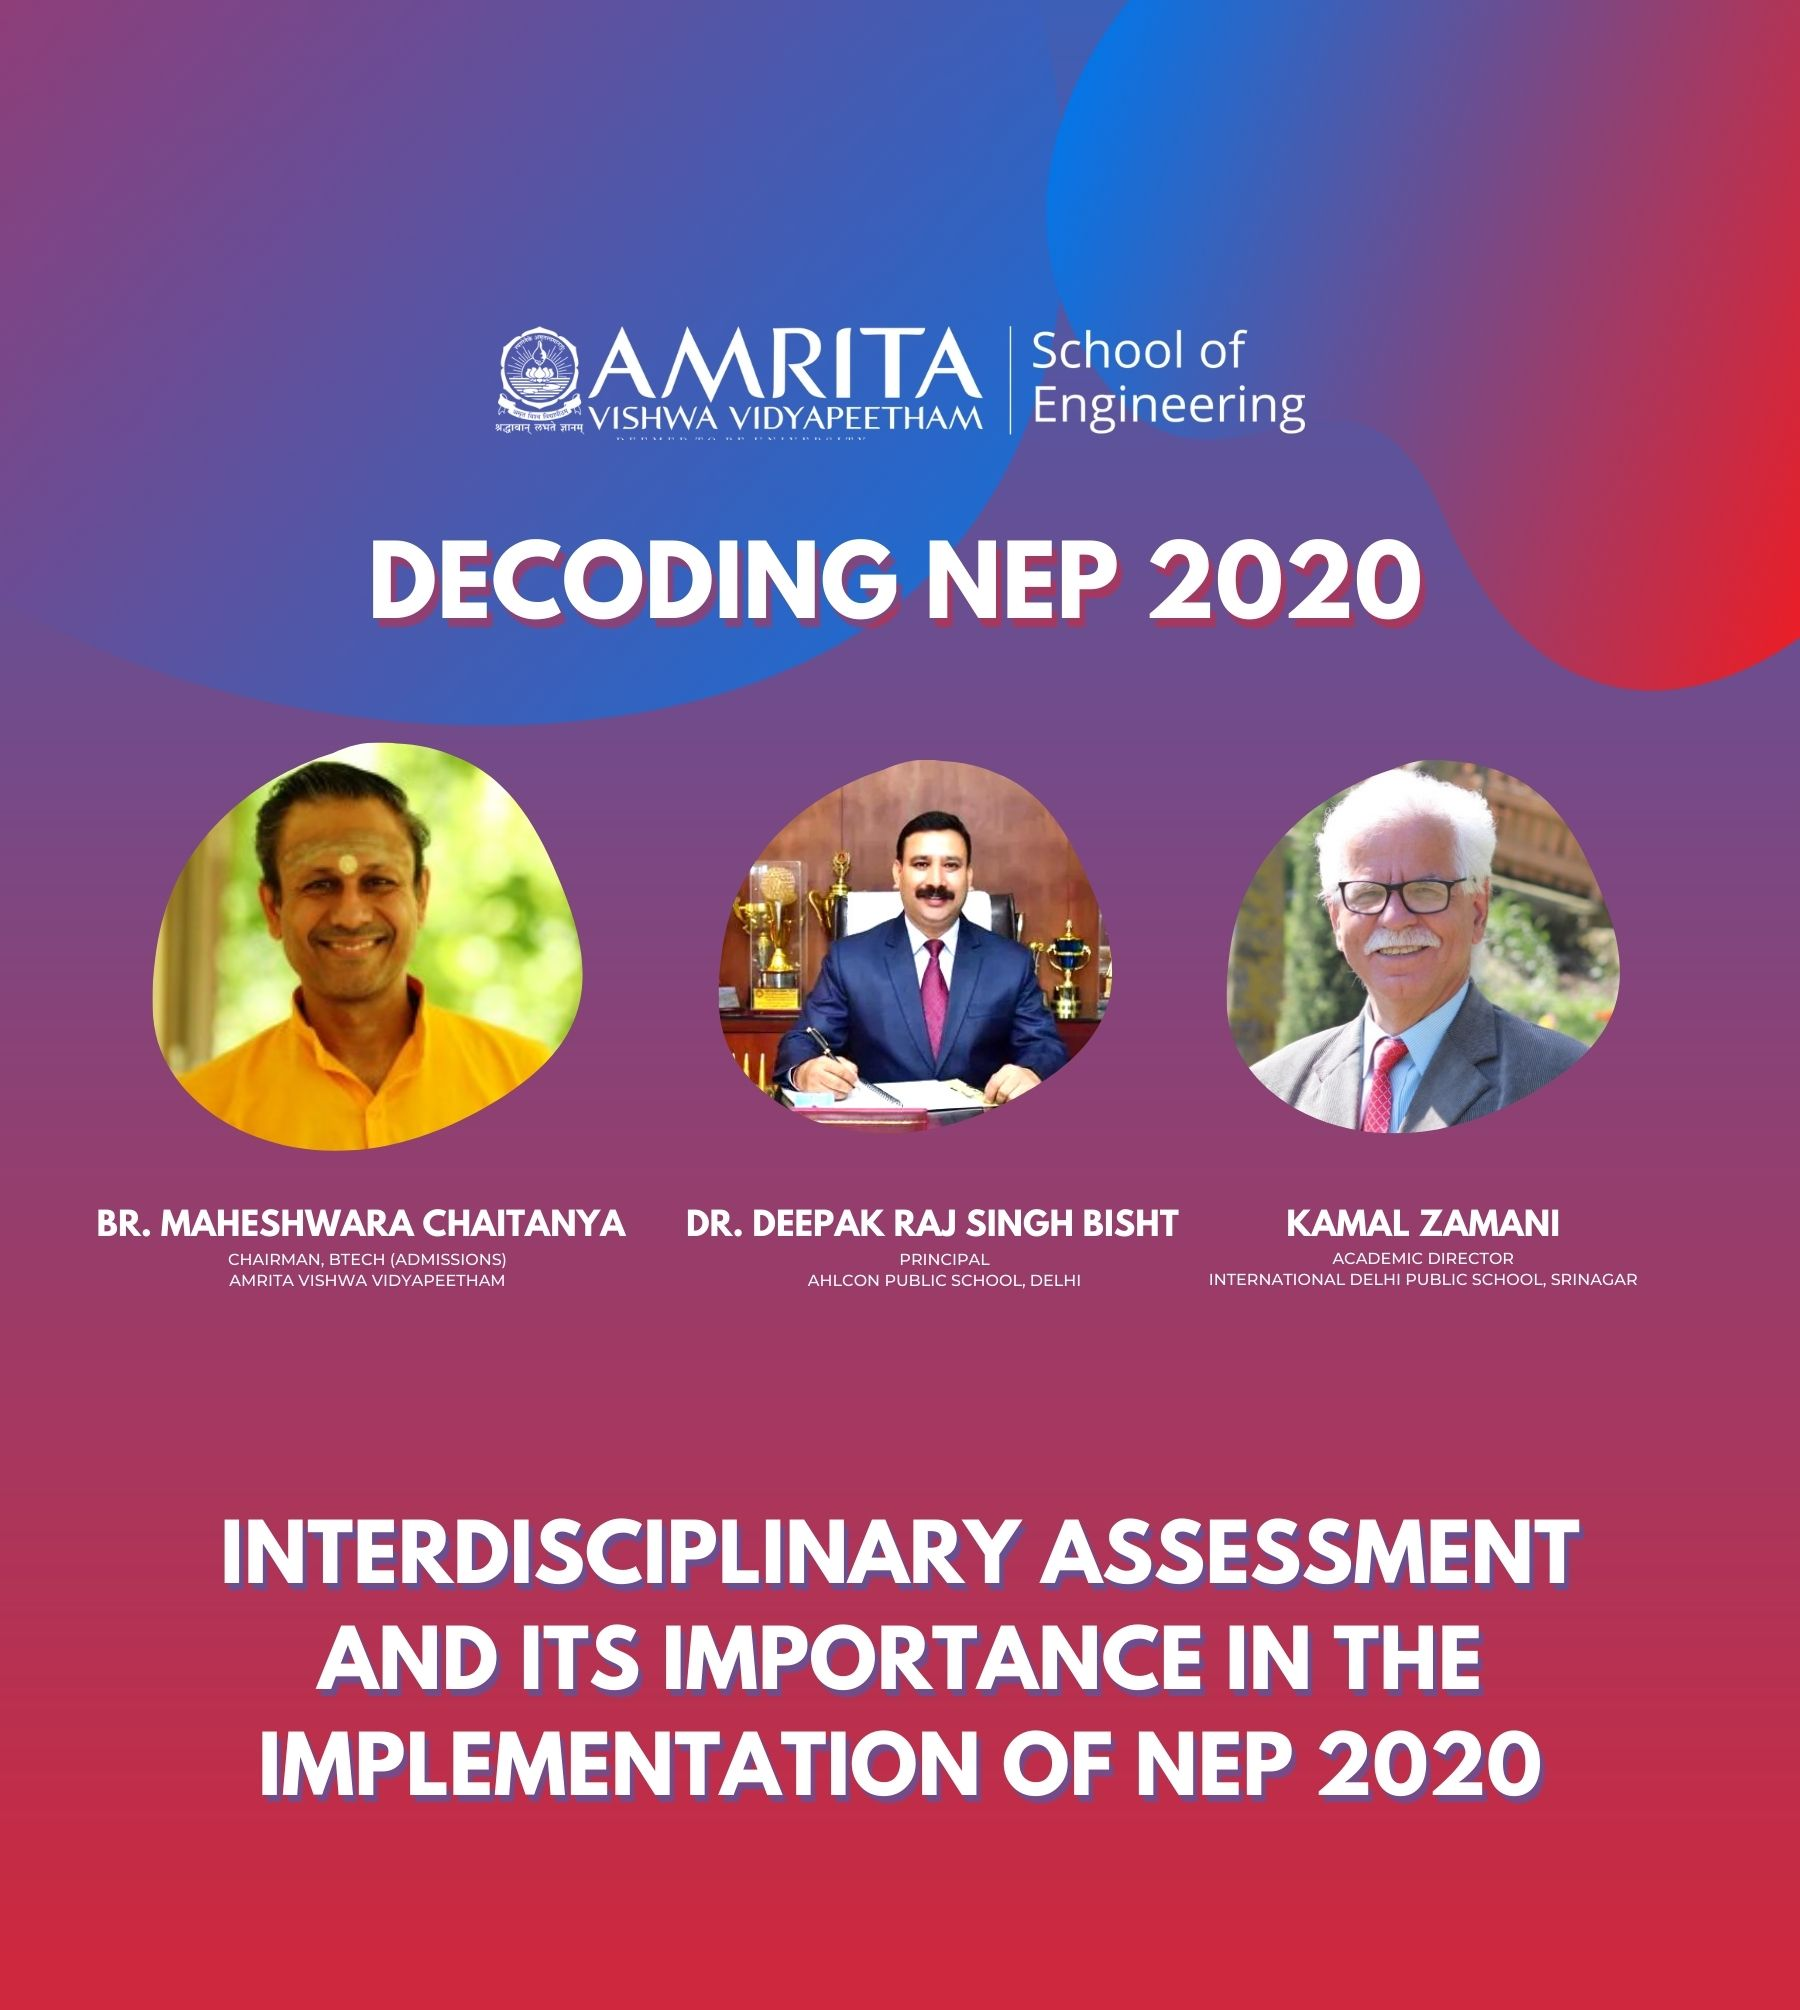 Interdisciplinary Assessment and Its Importance in the Implementation of NEP 2020